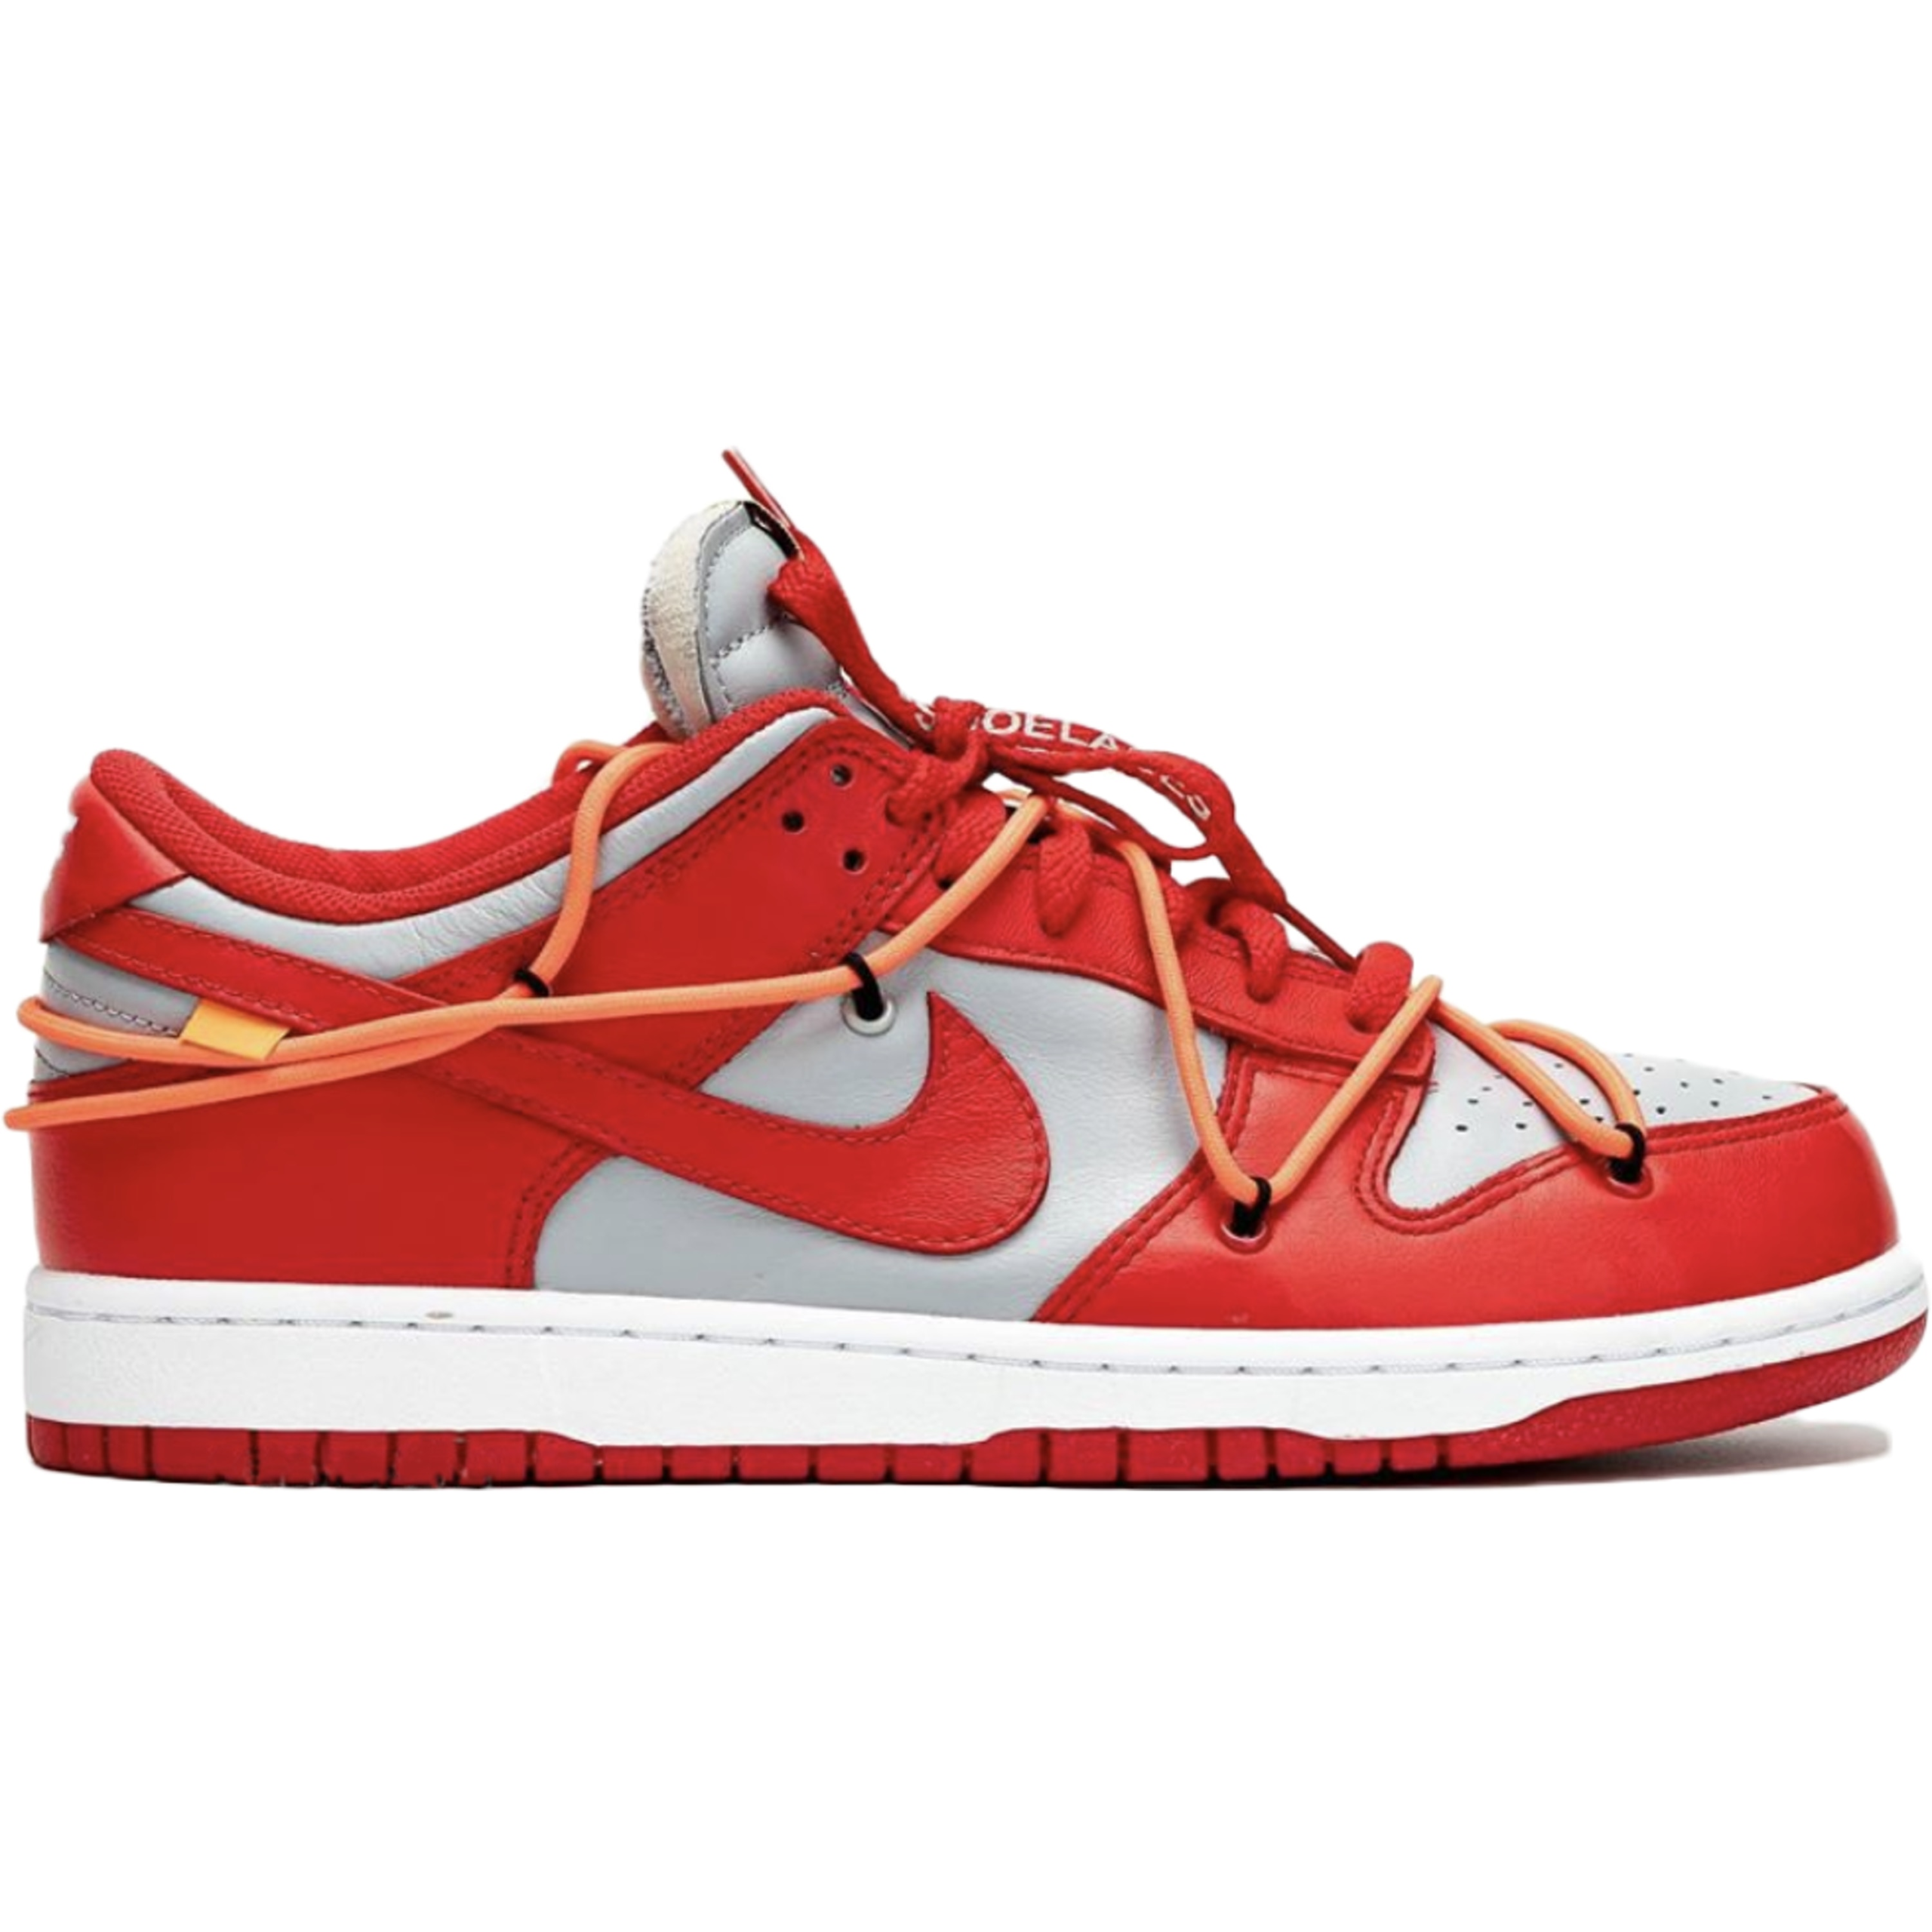 Nike Dunk Low Off-White University Red (CT0856-600)